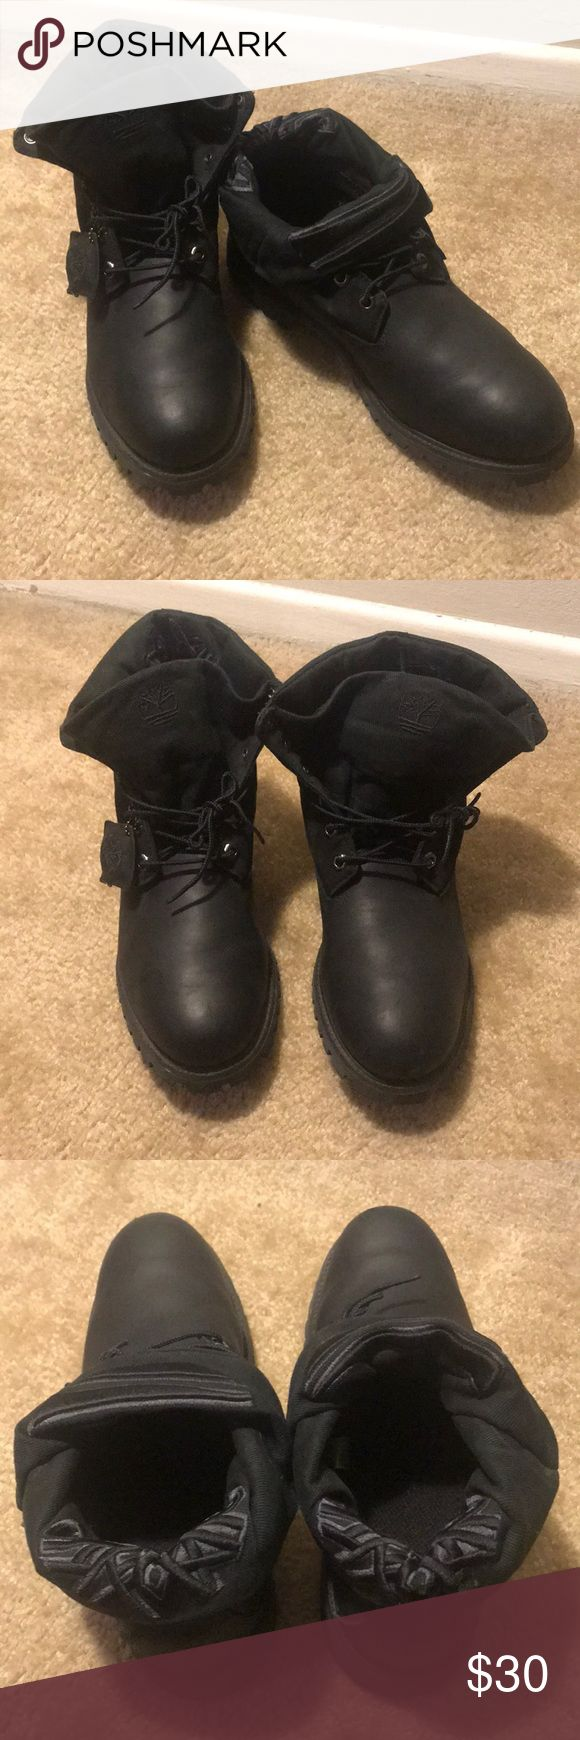 Men's Timberland All black Roll Top Fold Over Timberland Boots. No Box included. Small/minor scuffs (see pictures) Timberland Shoes Boots